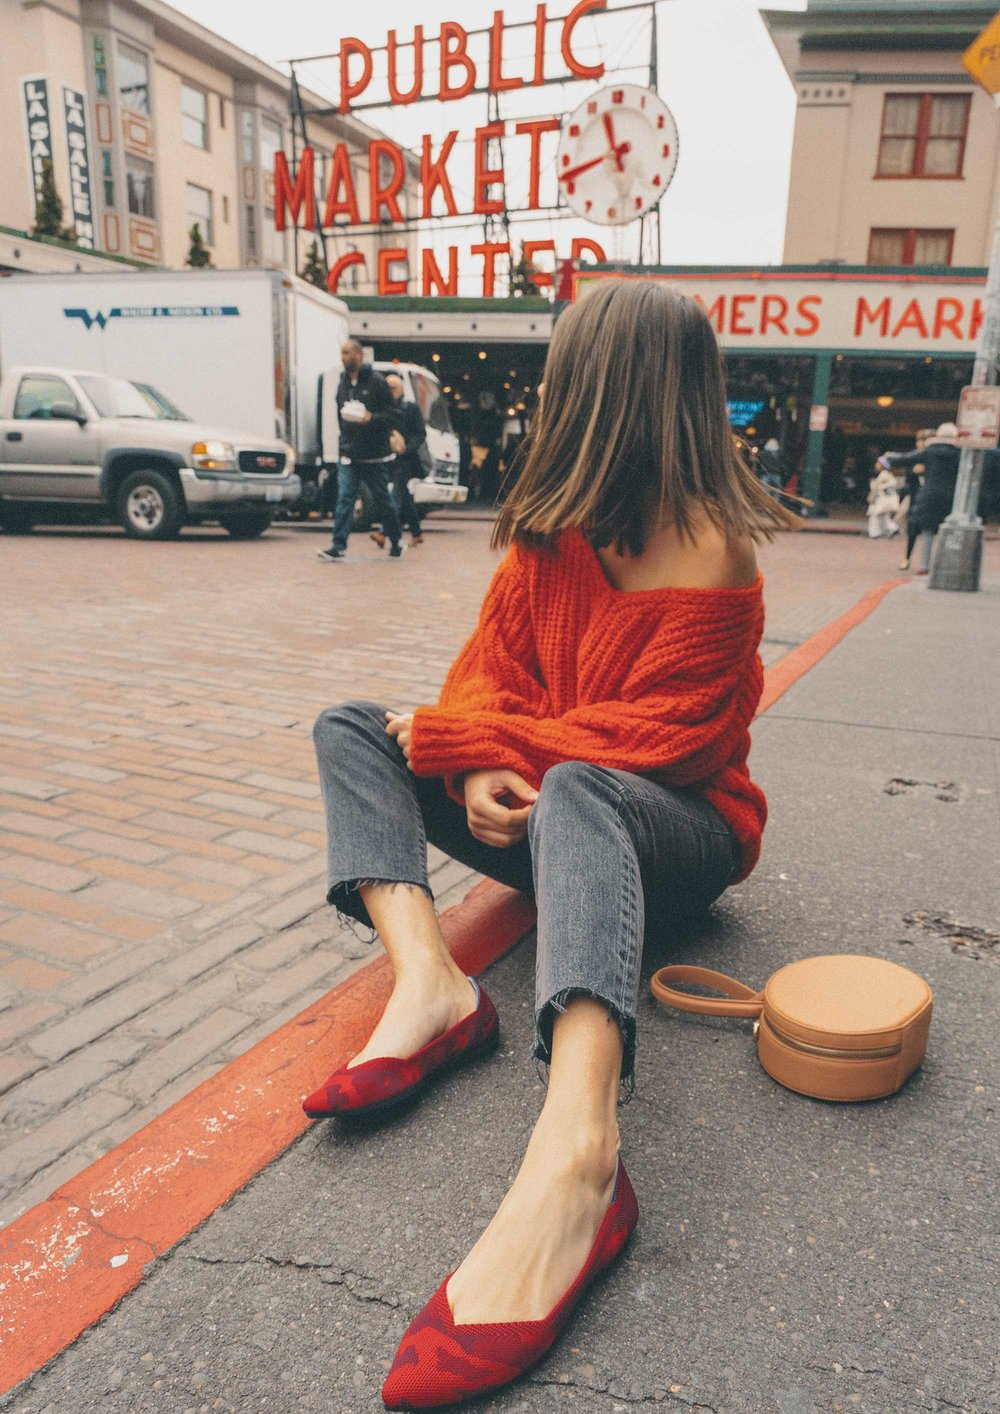 Pike-Place-Market-Seattle-Fruit-Stand-Rothy-Flats1.jpg